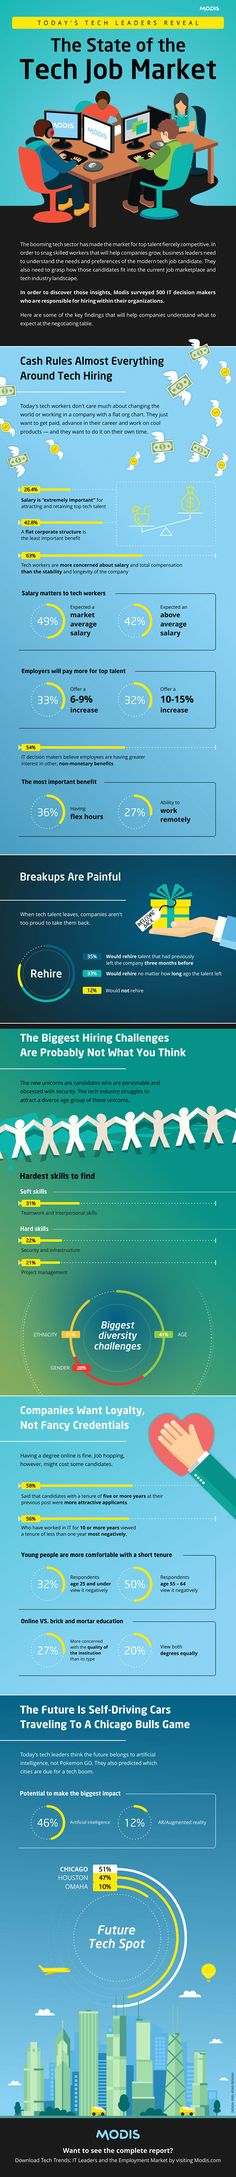 The State of the Tech Job Market #Infographic #Business #Tech